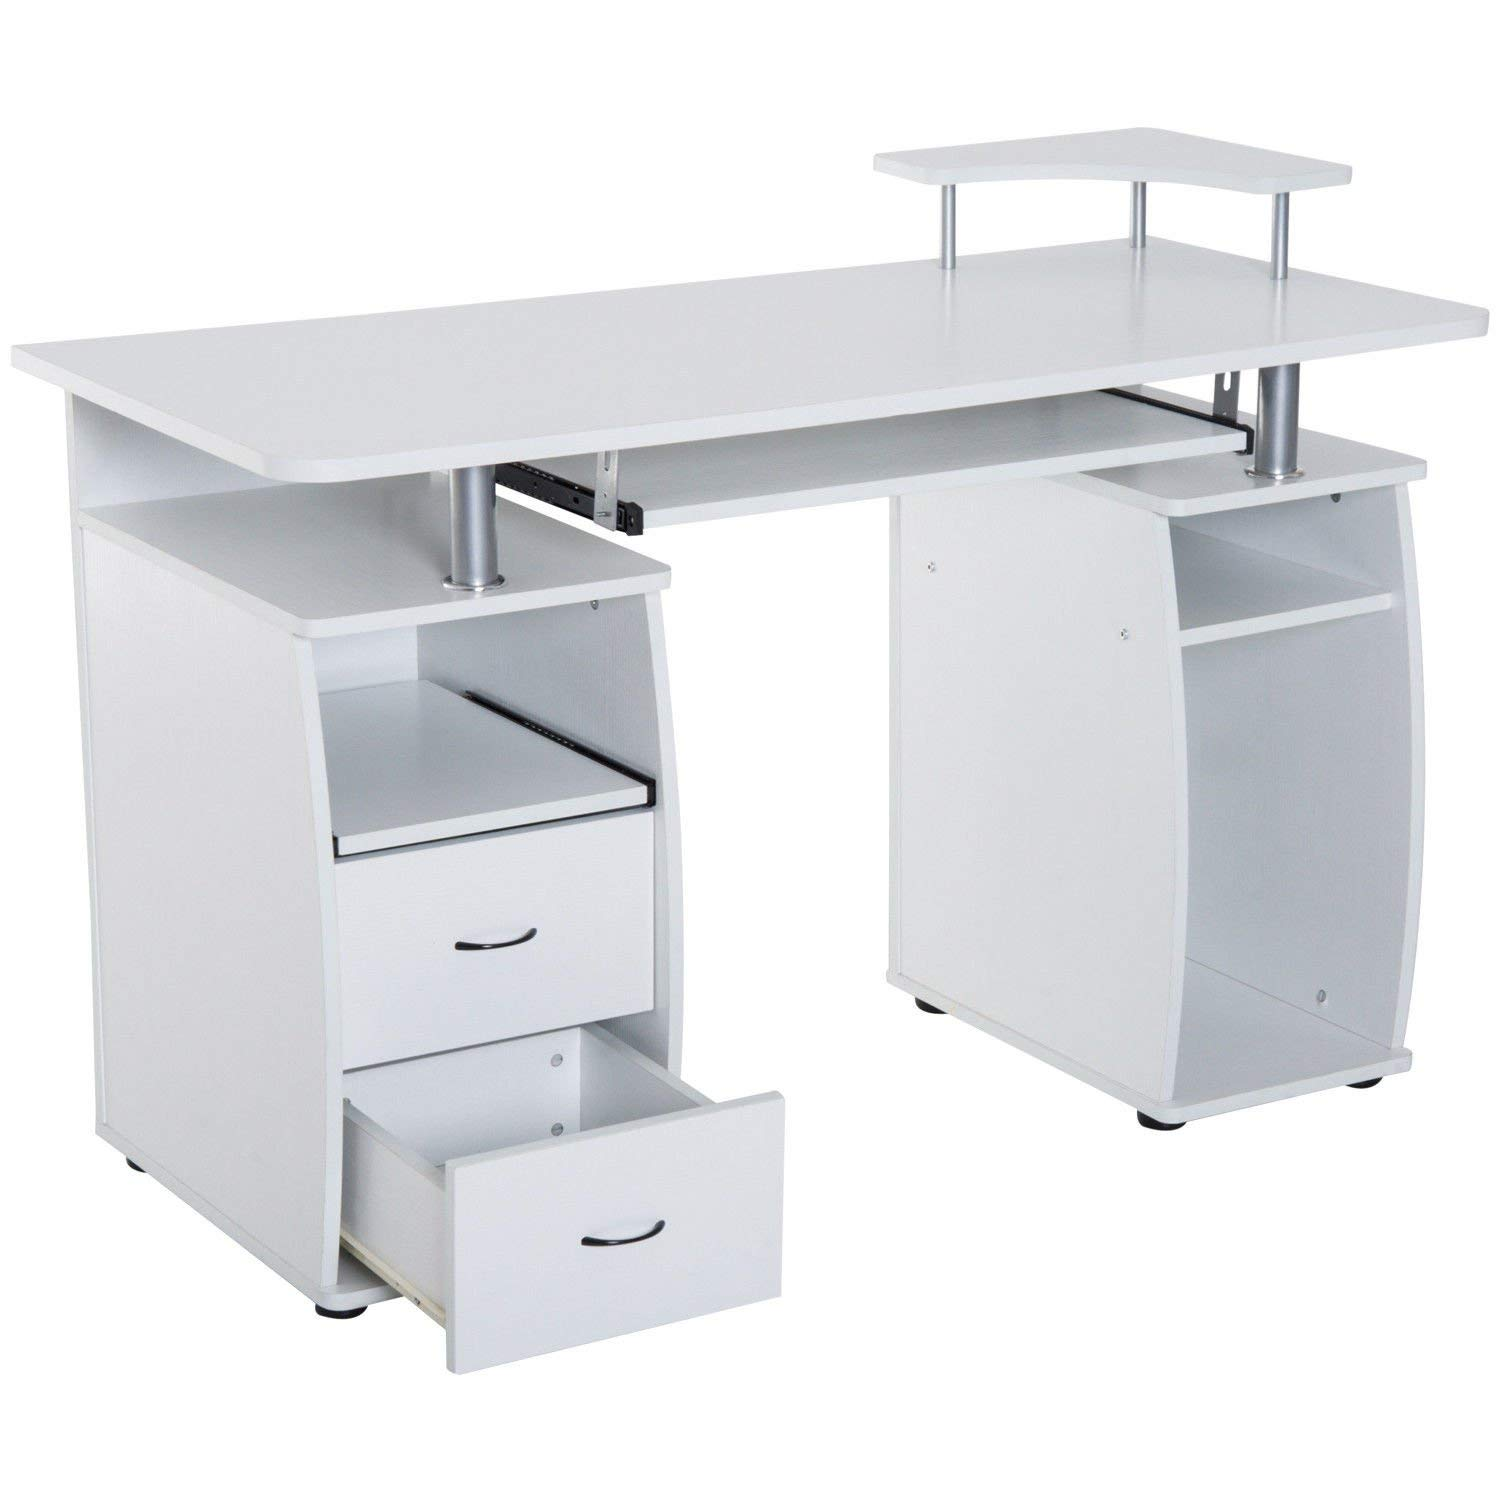 Get Quotations White Wooden Home Office Style Computer Desk CPU Storage Keyboard Tray Scanner Shelf 2 Drawers